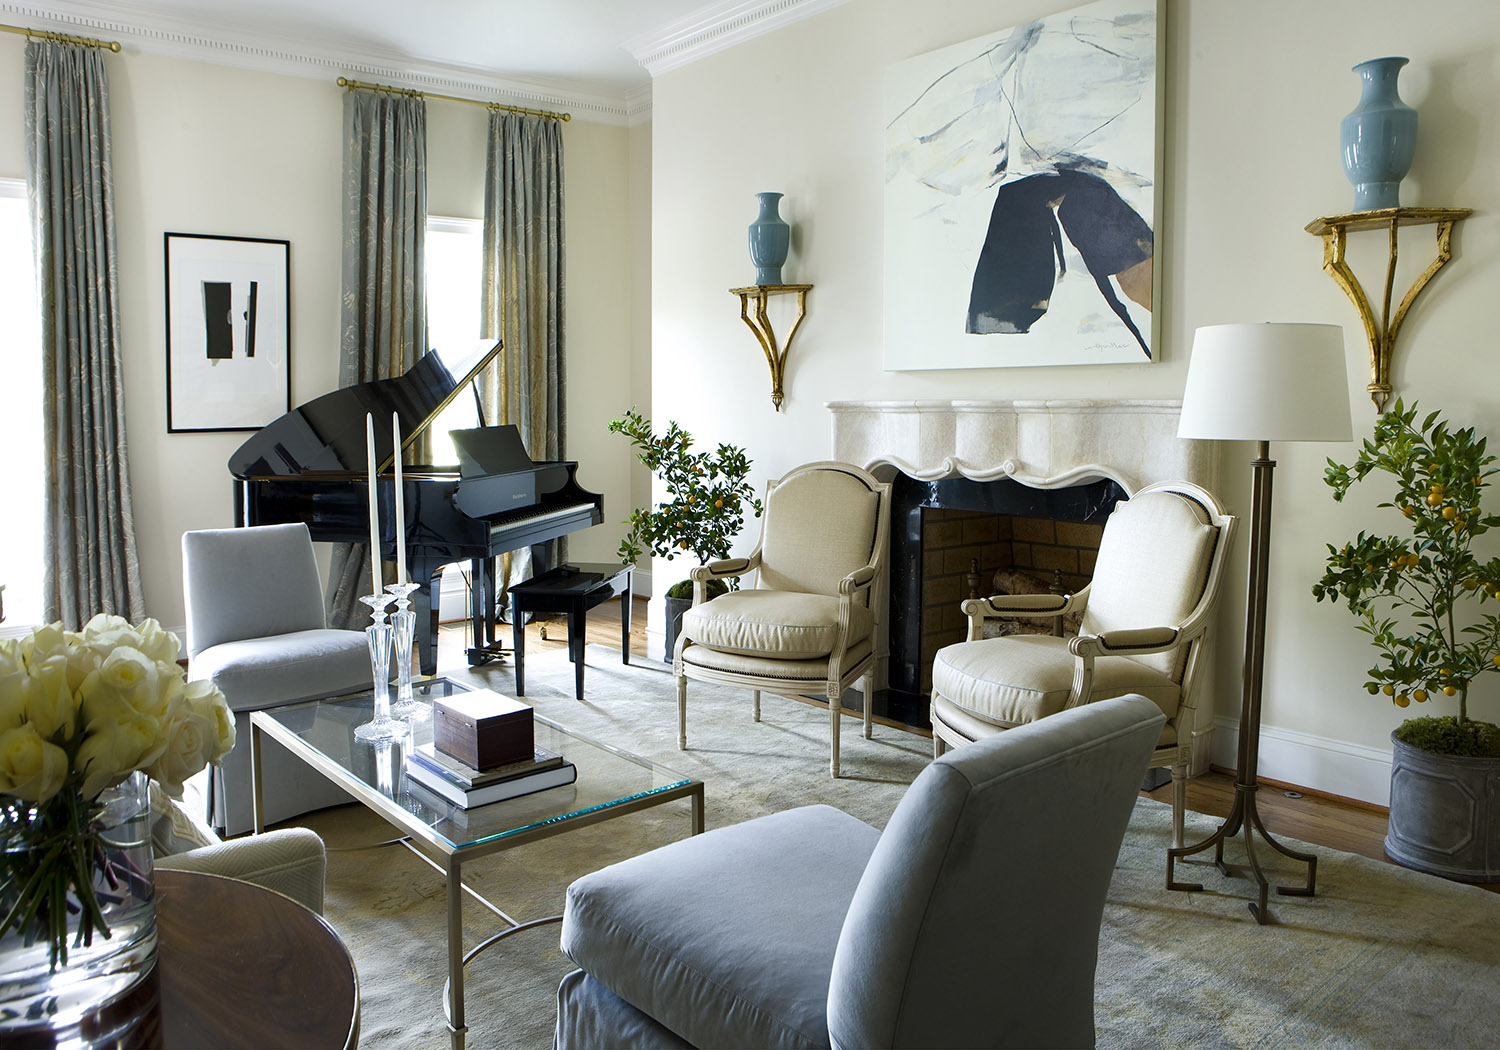 Residence featuring an interesting mix of neutrals by Robert Brown Interior Design